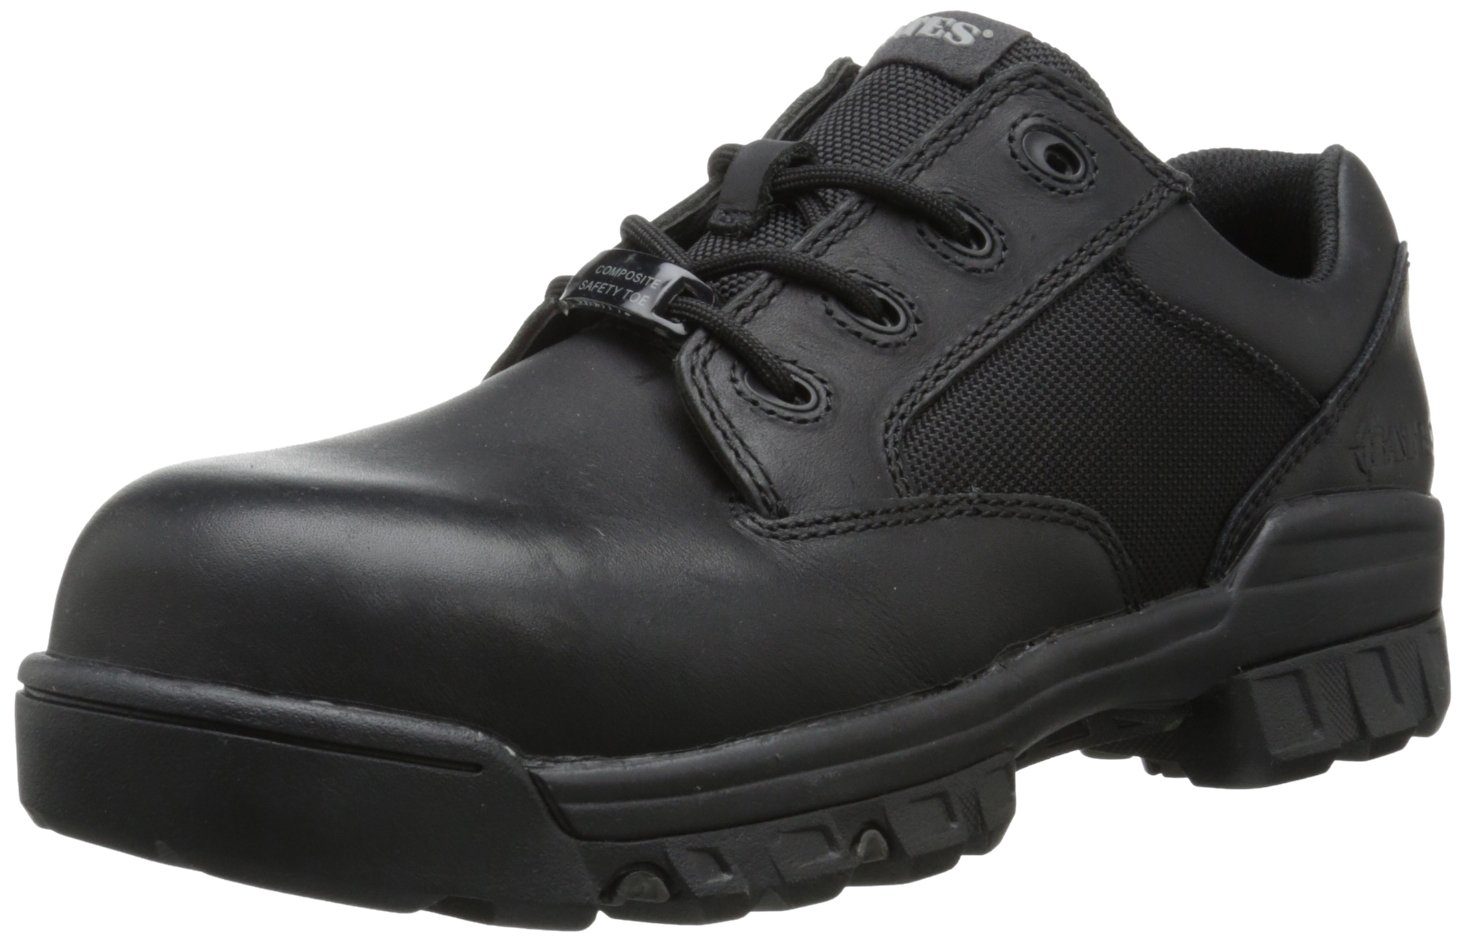 Bates Men's Tactical Sport Oxford Work Boot,Black,7 XW US